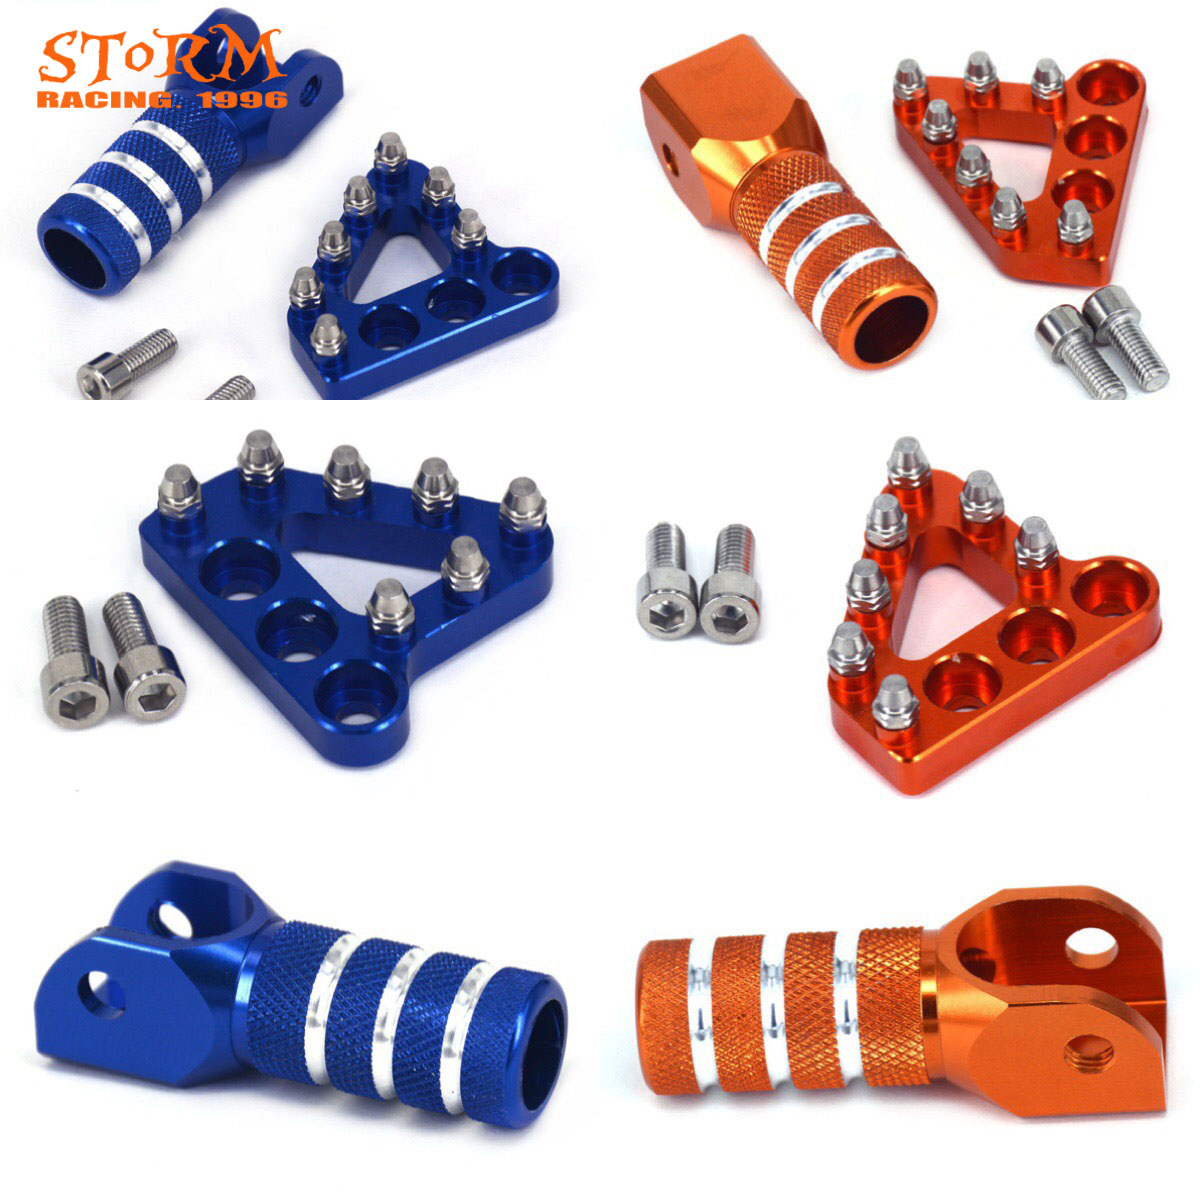 Rear Brake Pedal Step Plate Gear Shifter Lever Tip For KTM duke125 200 390 990 950 ADVENTURE 690 DUKE SMC 690 ENDURO EXC mtkracing cnc aluminum brake clutch levers set short adjustable lever for ktm adventure 1050 690 duke smc smcr 690 enduro r